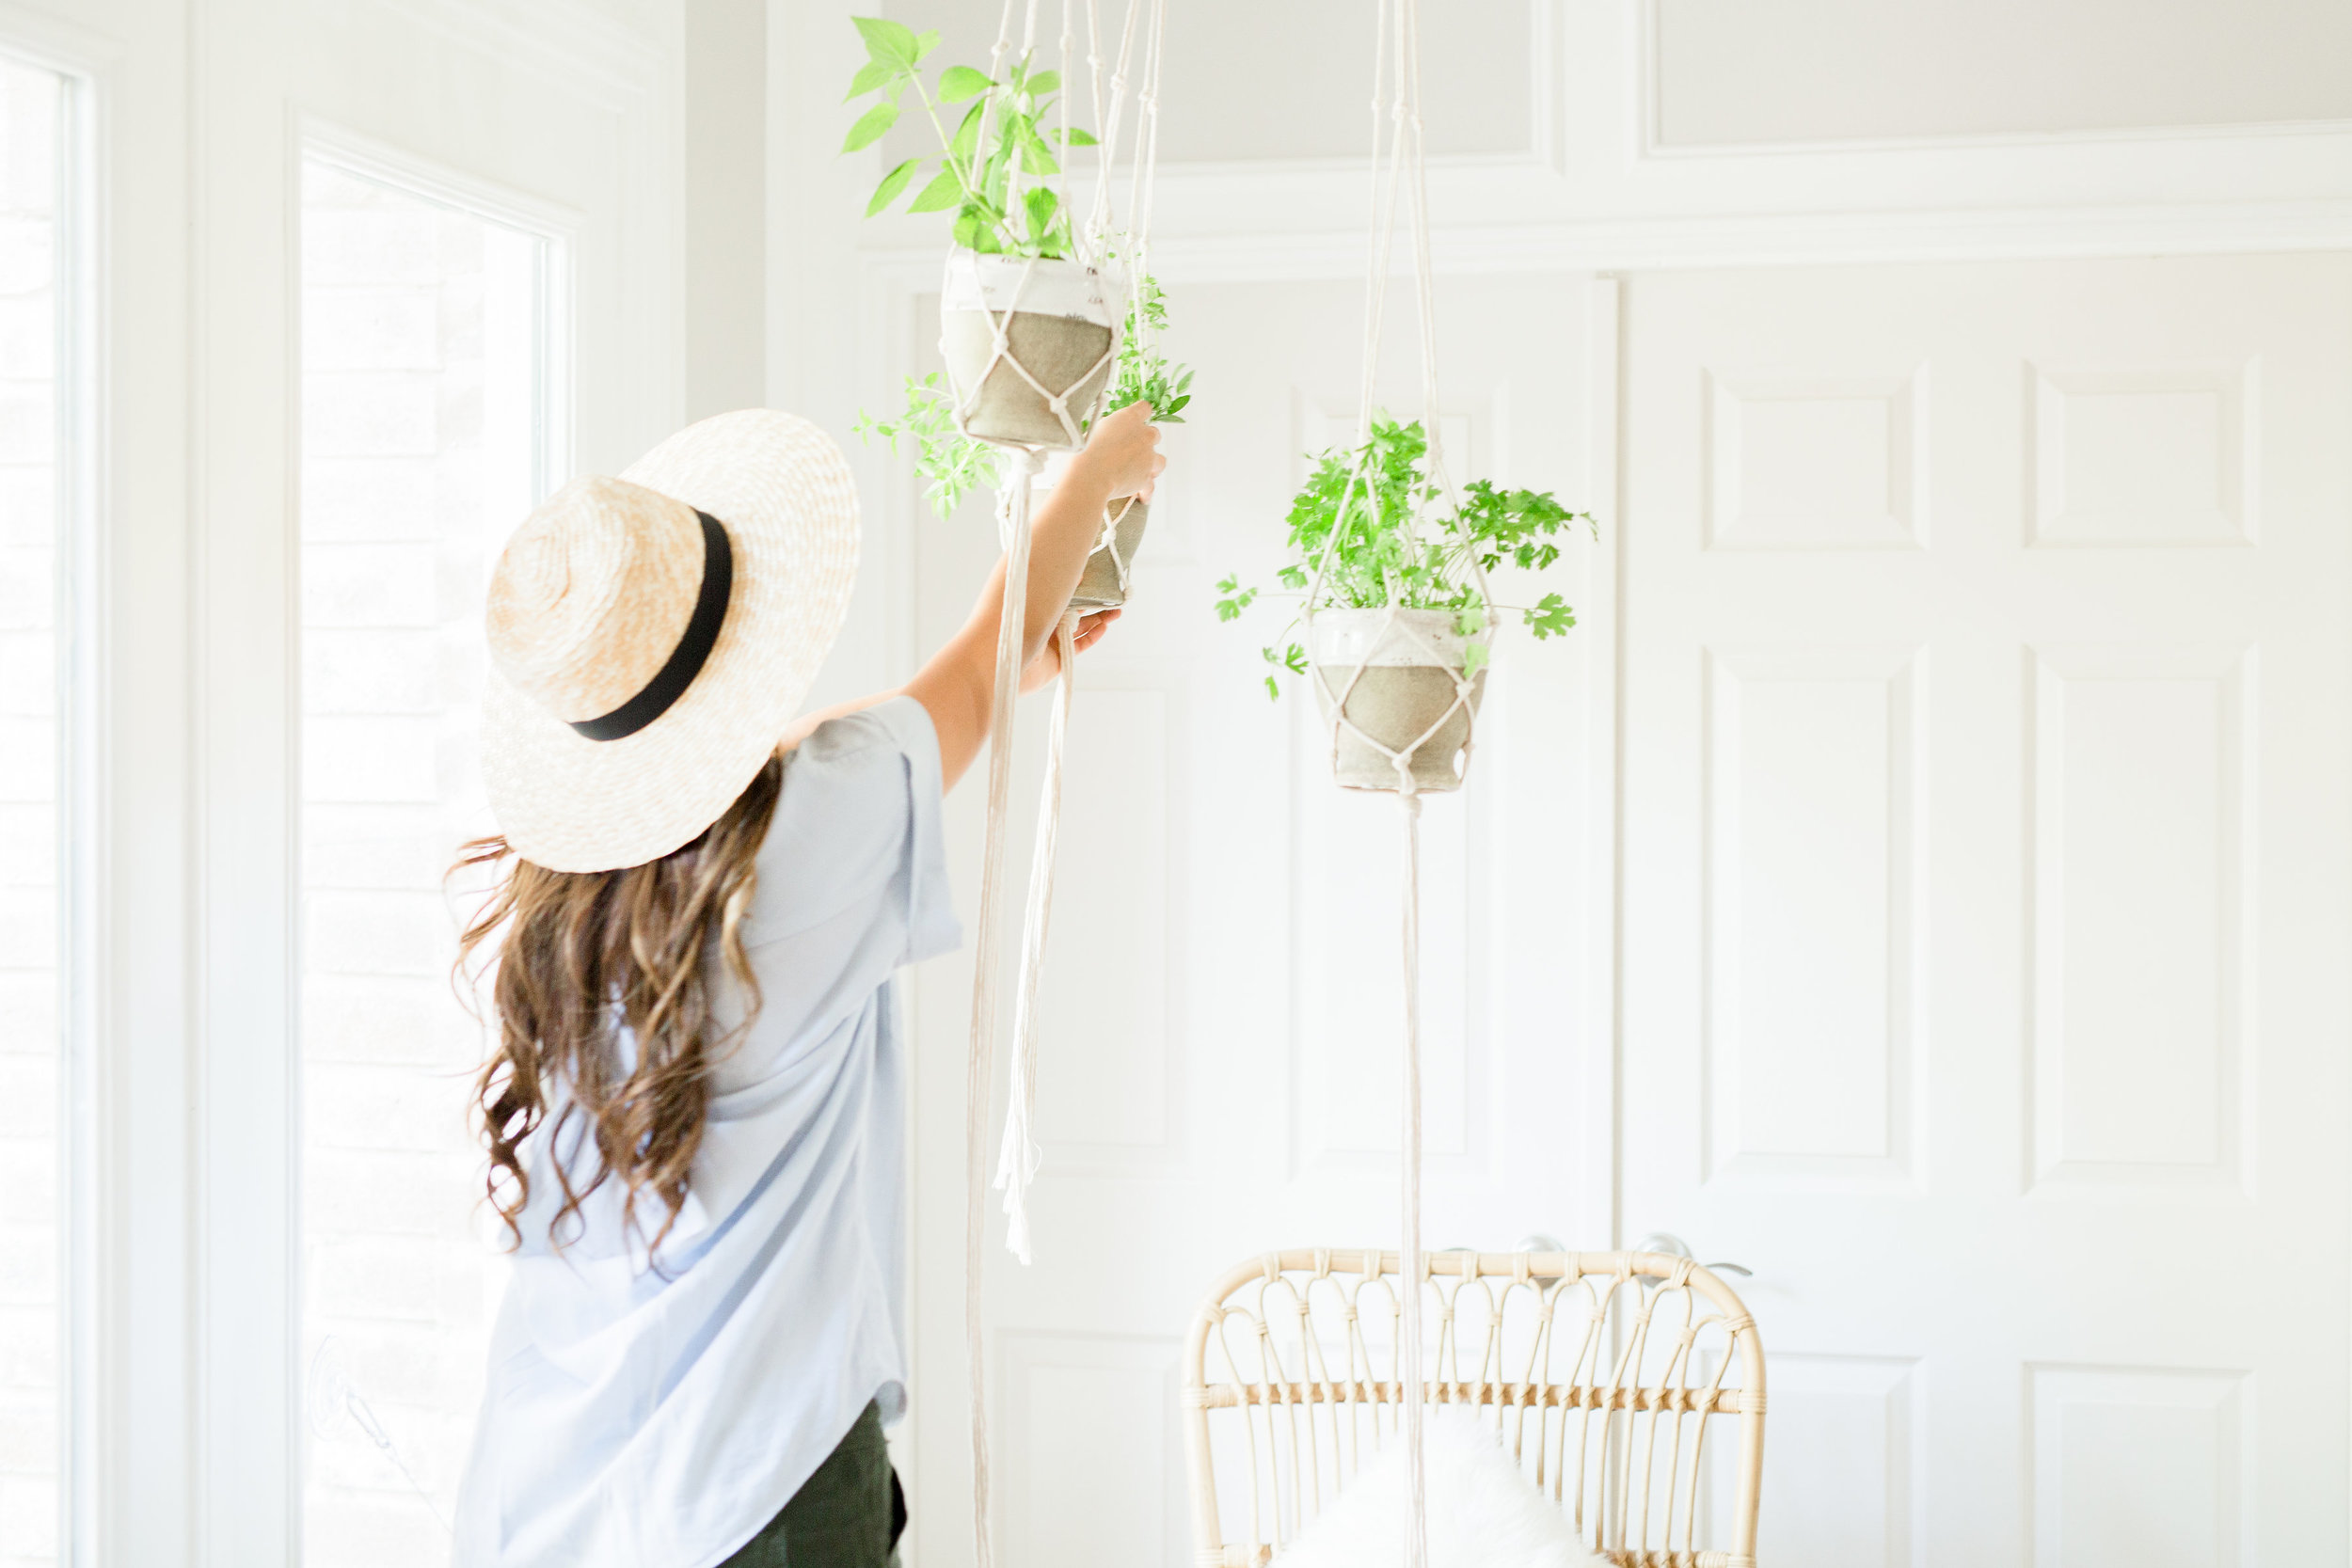 Herb garden play date toddler activity with DIY macrame hanger urban garden